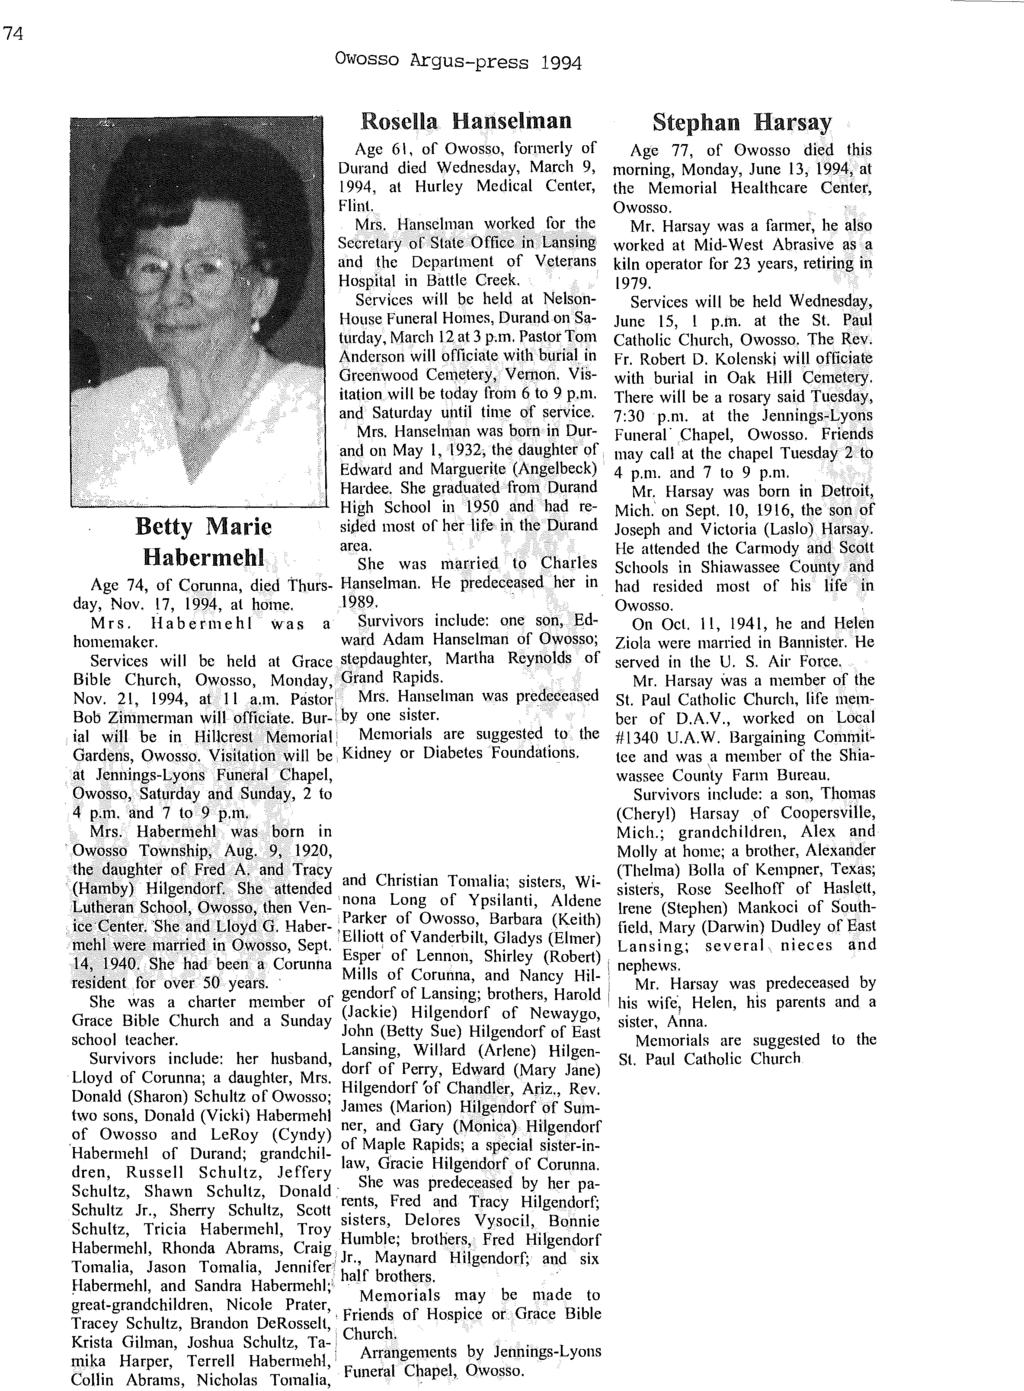 74 Owosso Argus-press 1994 Rosella Hanselman Stephan Harsay Age 61, of Owosso, formerly of Age 77, of Owosso died this Durand died Wednesday, March 9, morning, Monday, June 13, 1994, at 1994, at